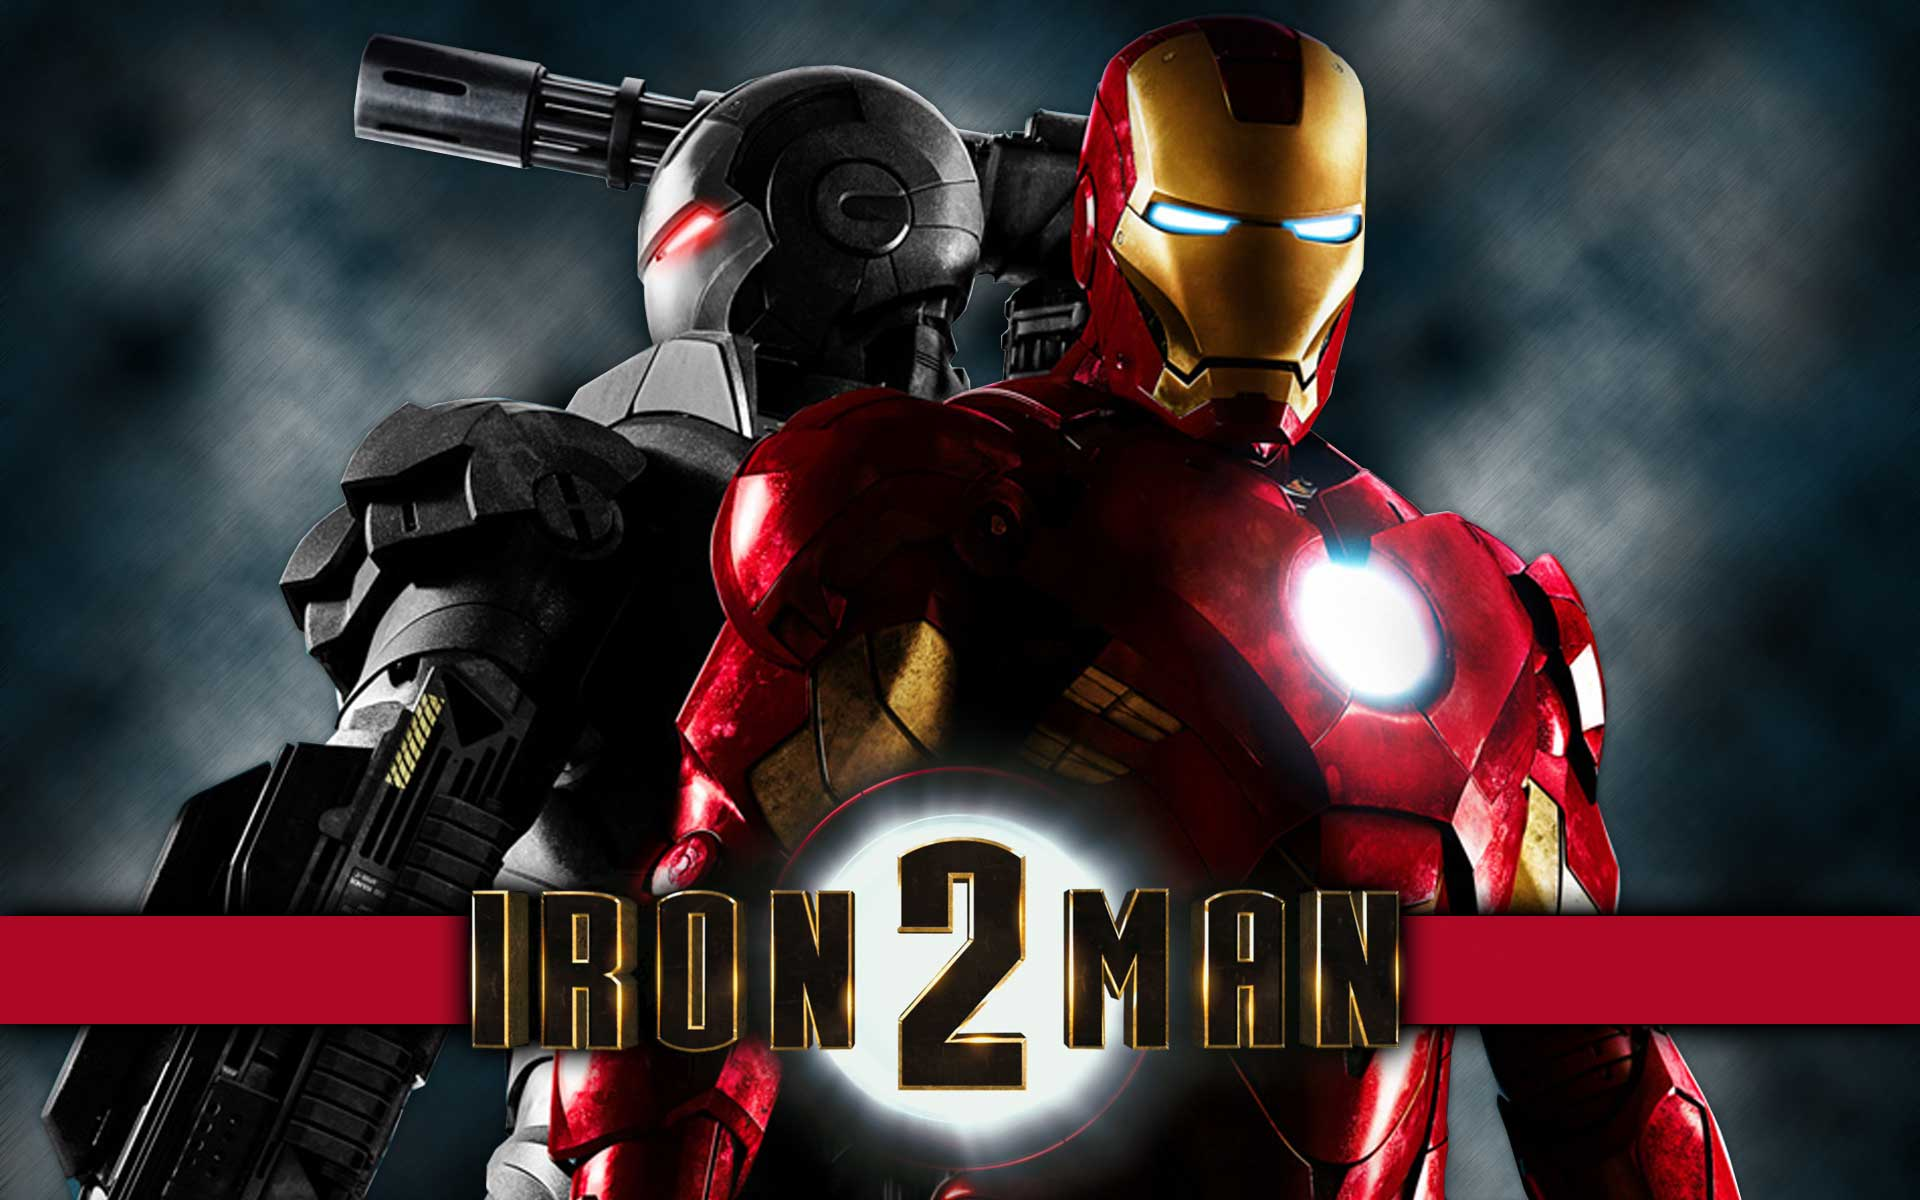 Iron Man 2 Widescreen Wallpapers HD Wallpapers 1920x1200